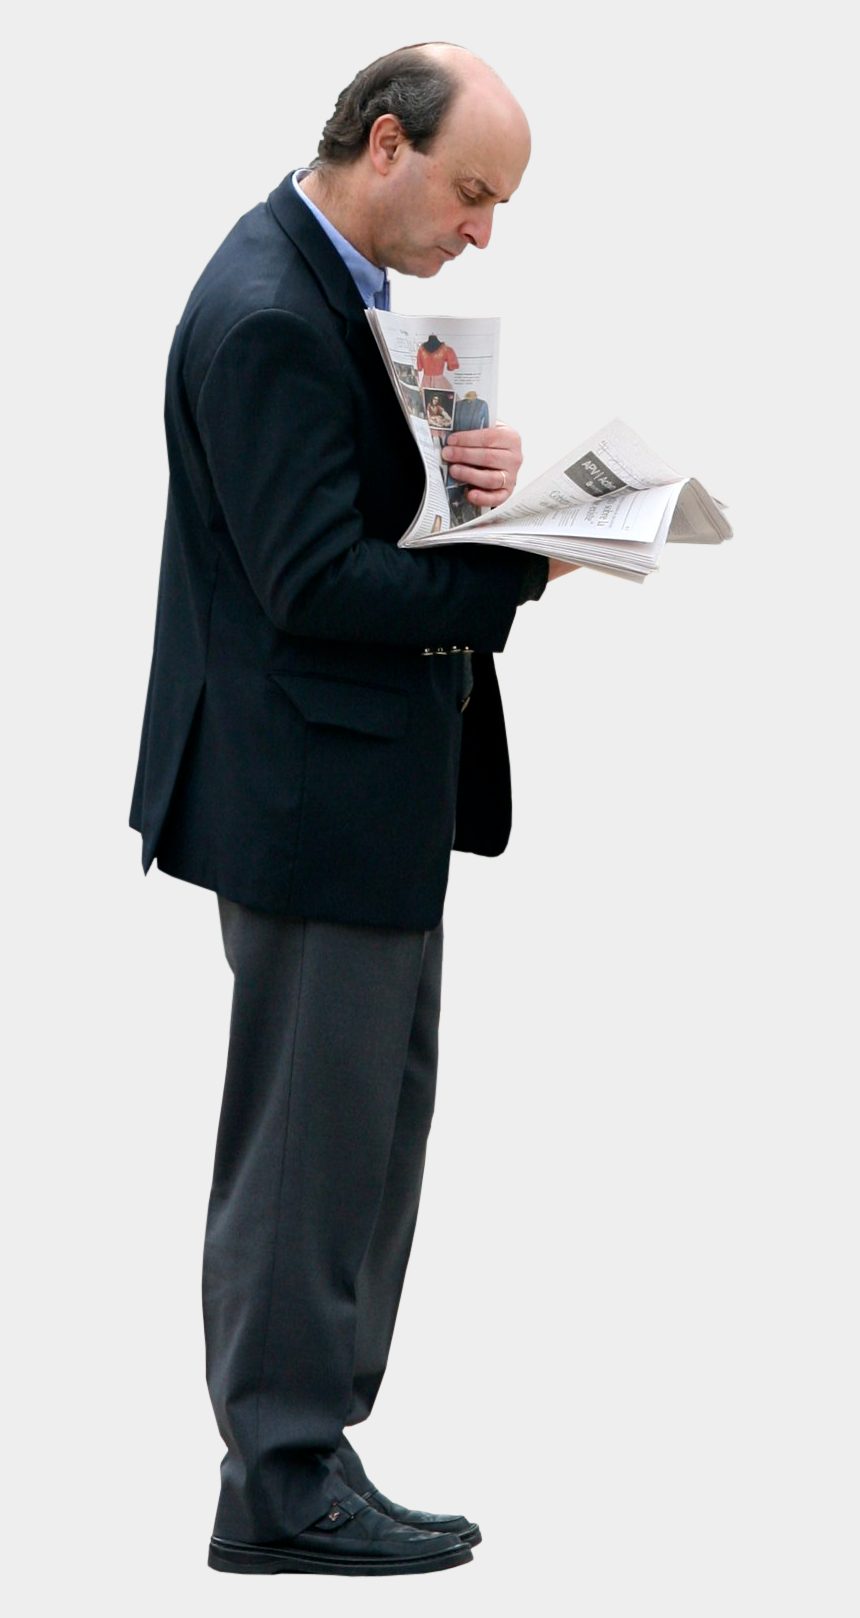 man standing clipart, Cartoons - Business Man Image Purepng - People Png For Photoshop